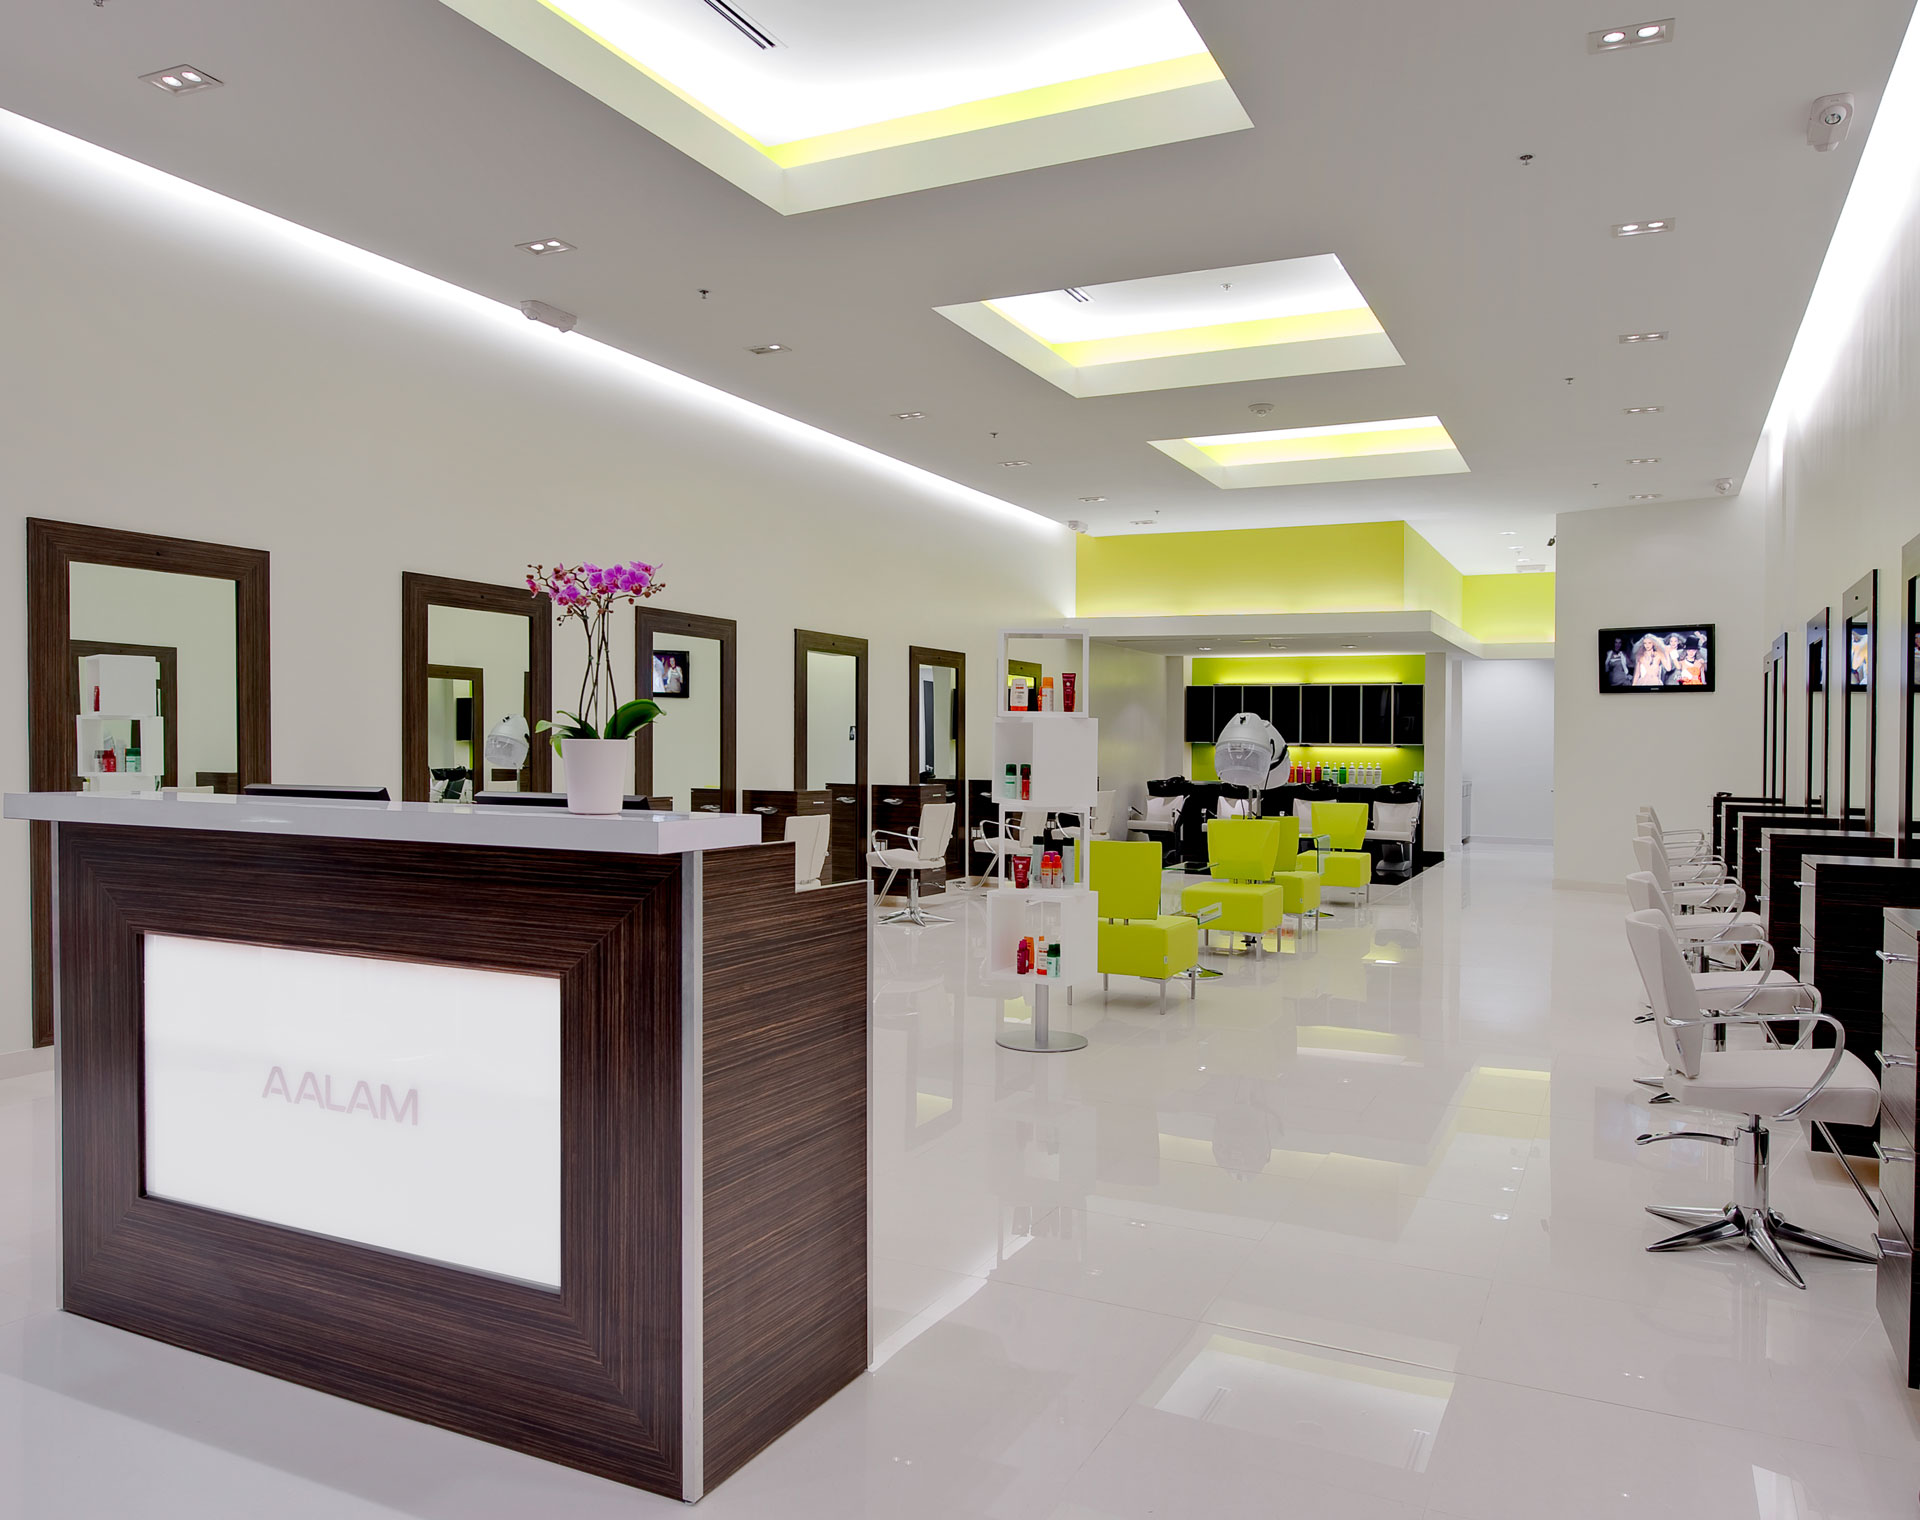 Dallas best hair salon plano best hair salon frisco best for Aalam salon dallas